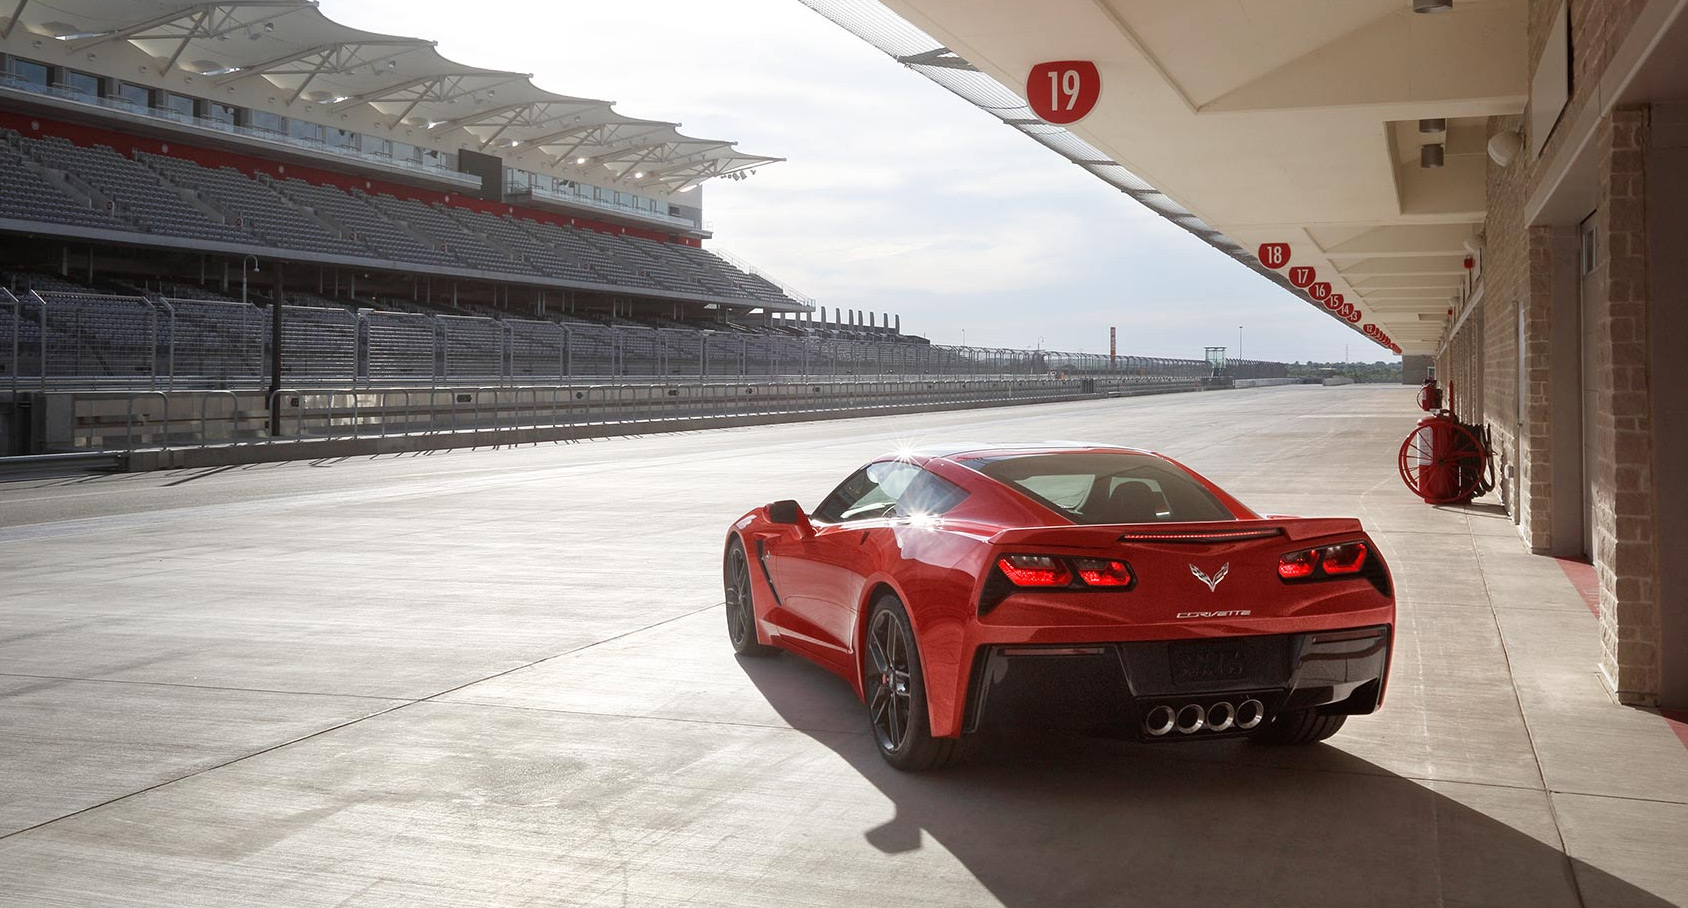 Valley Chevy - Man Buying New Chevrolet Vehicle: Corvette Track Day